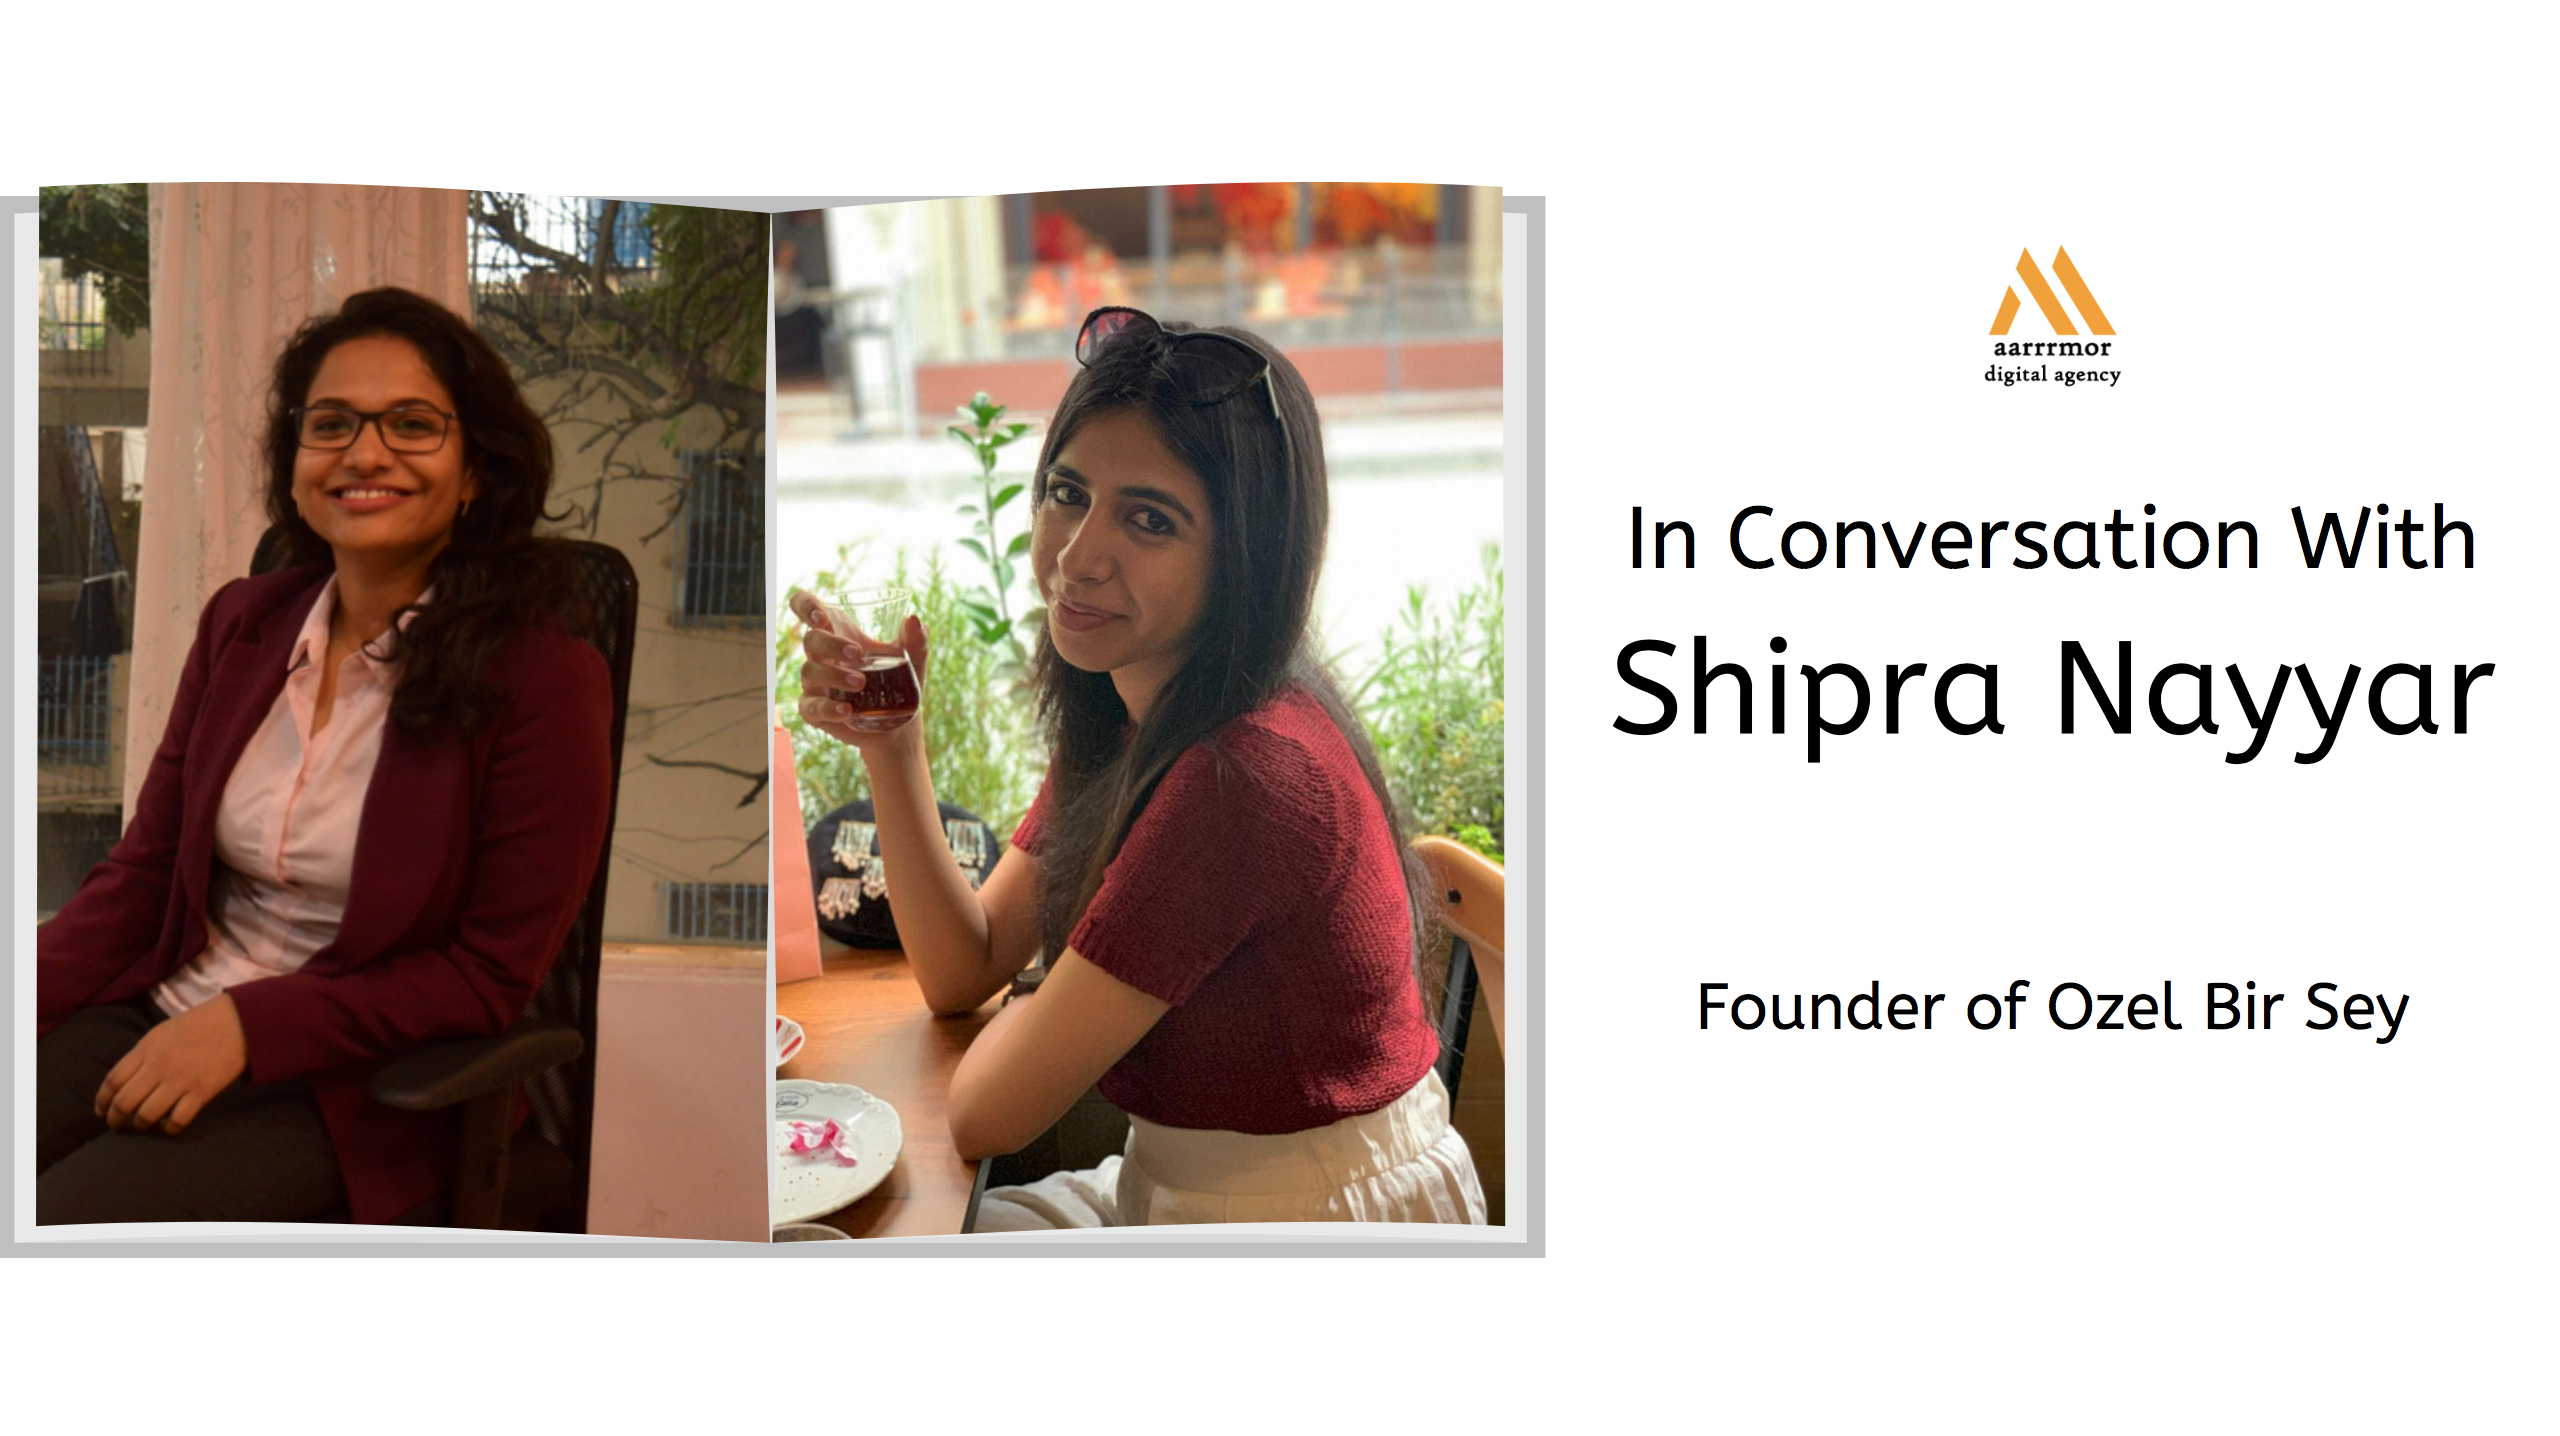 Founder Interview with Shipra Nayyar,